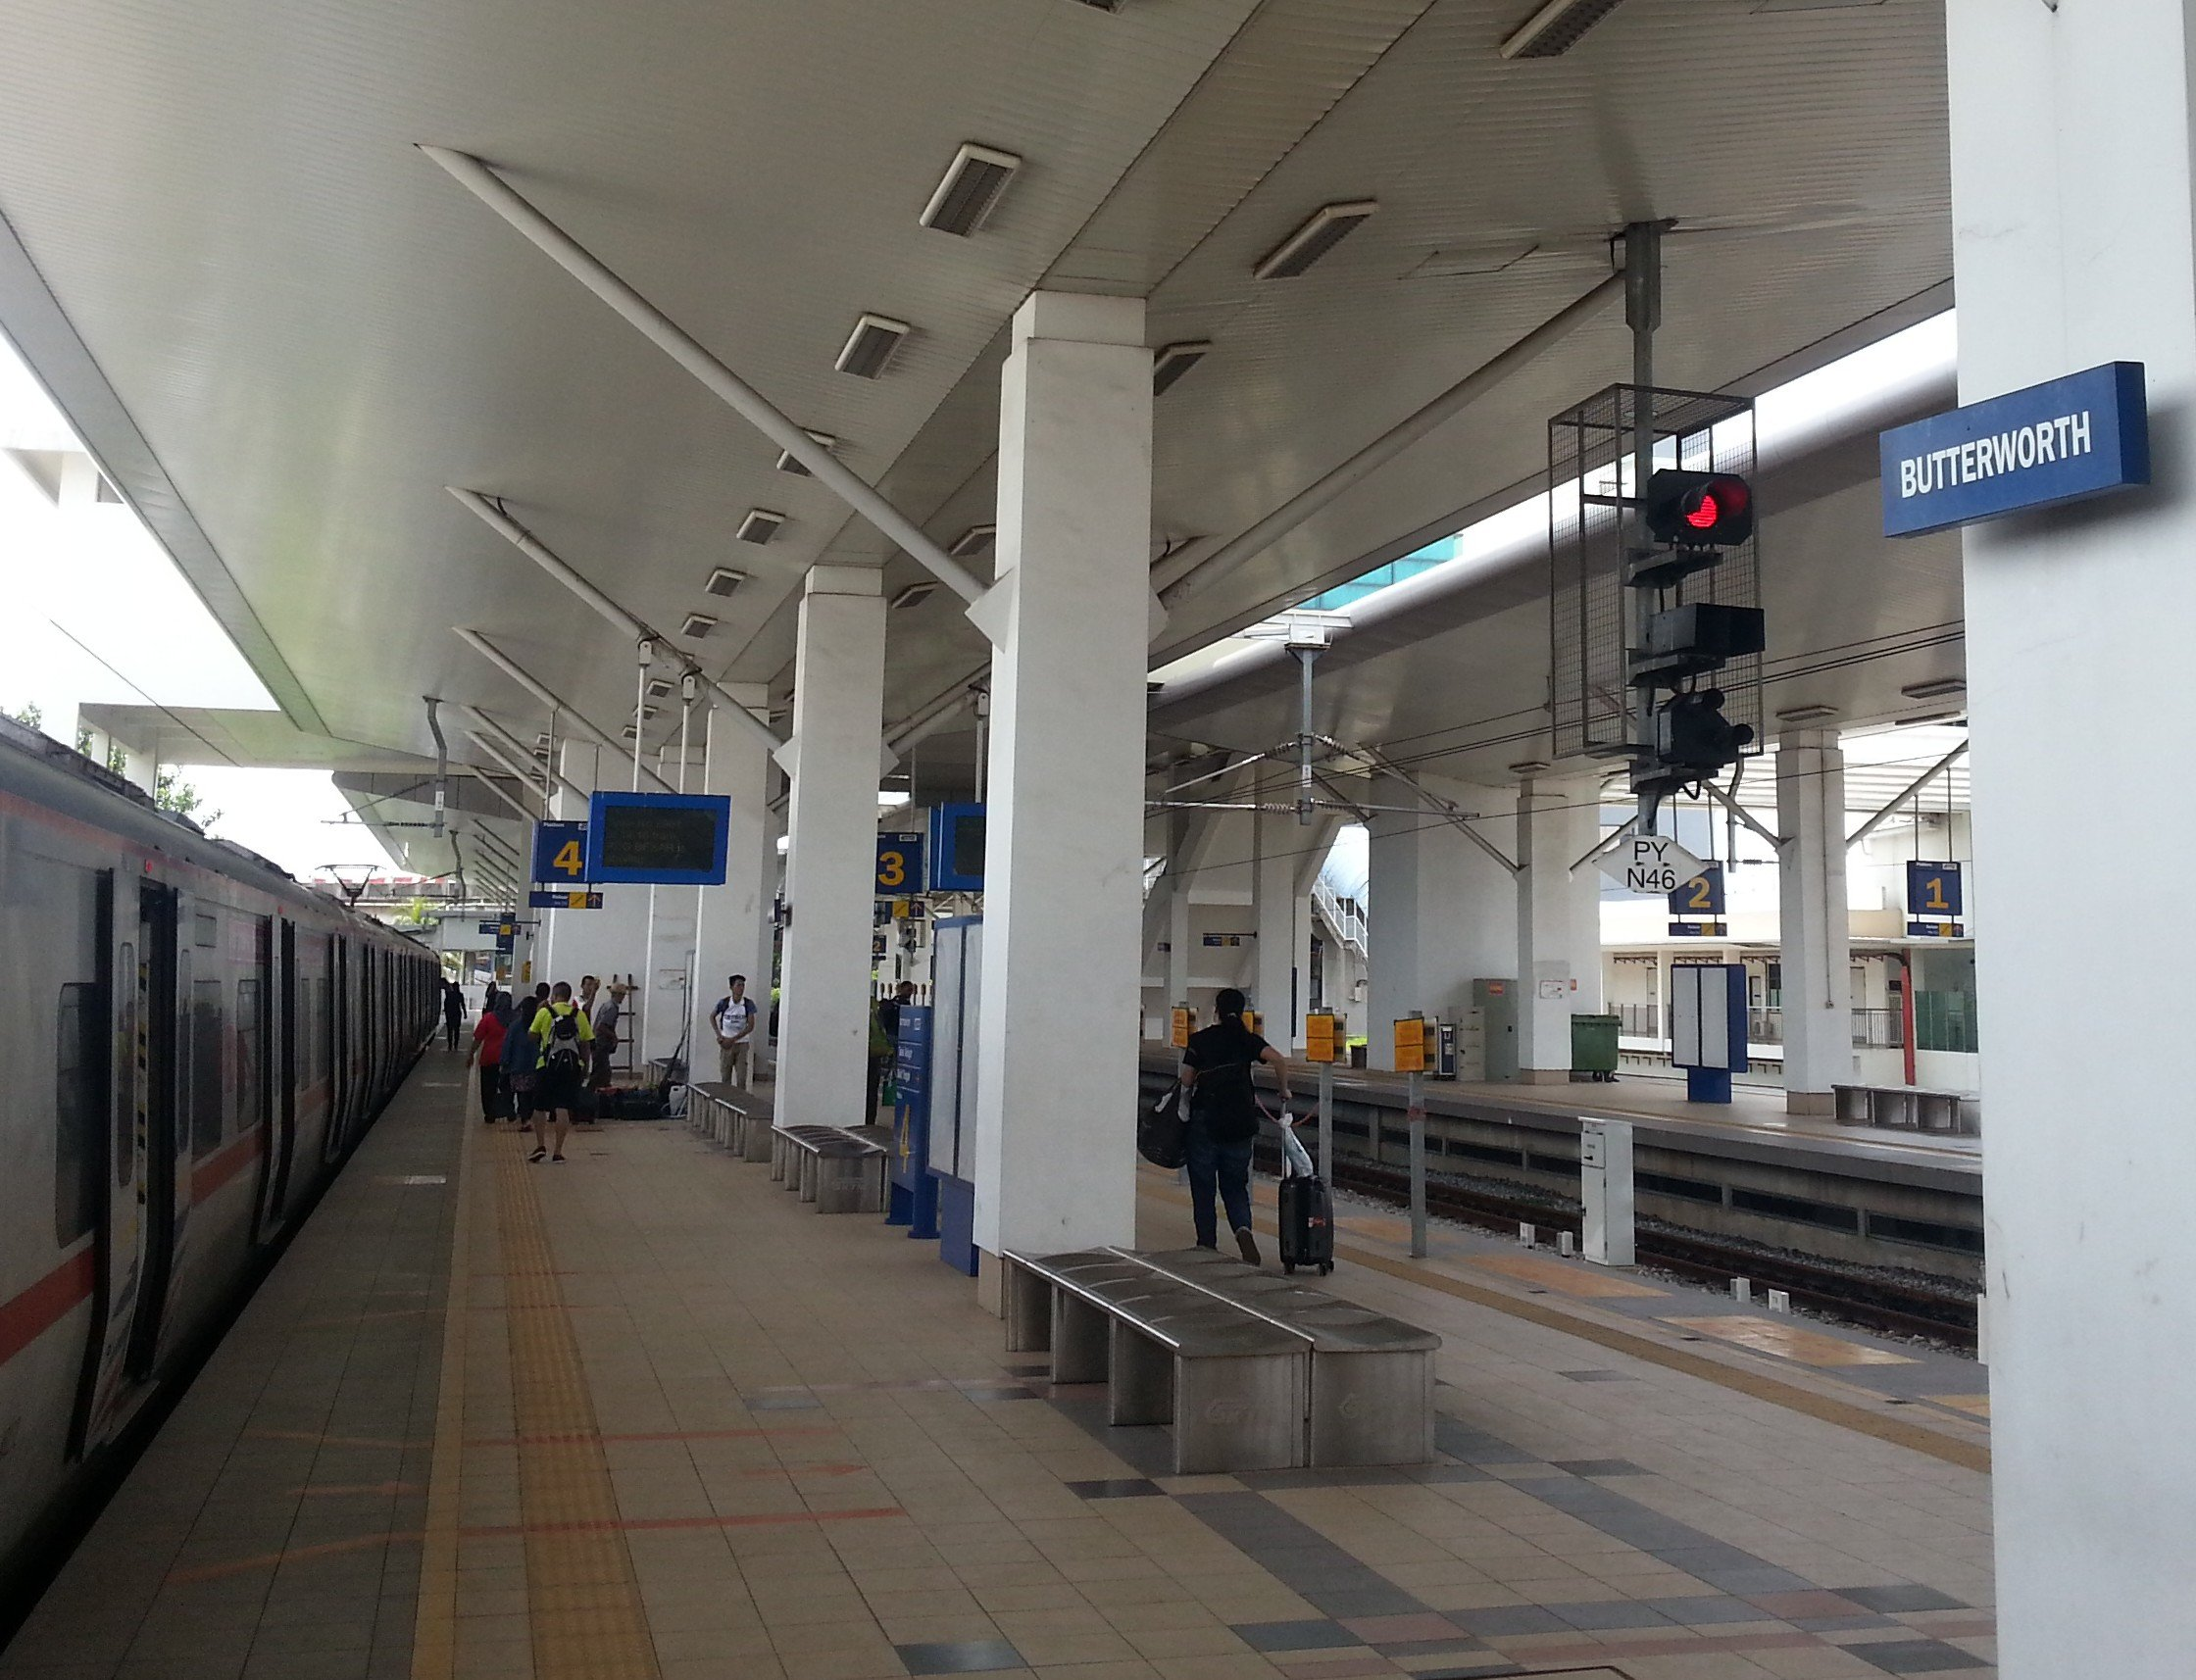 Arrival at Butterworth Train Station